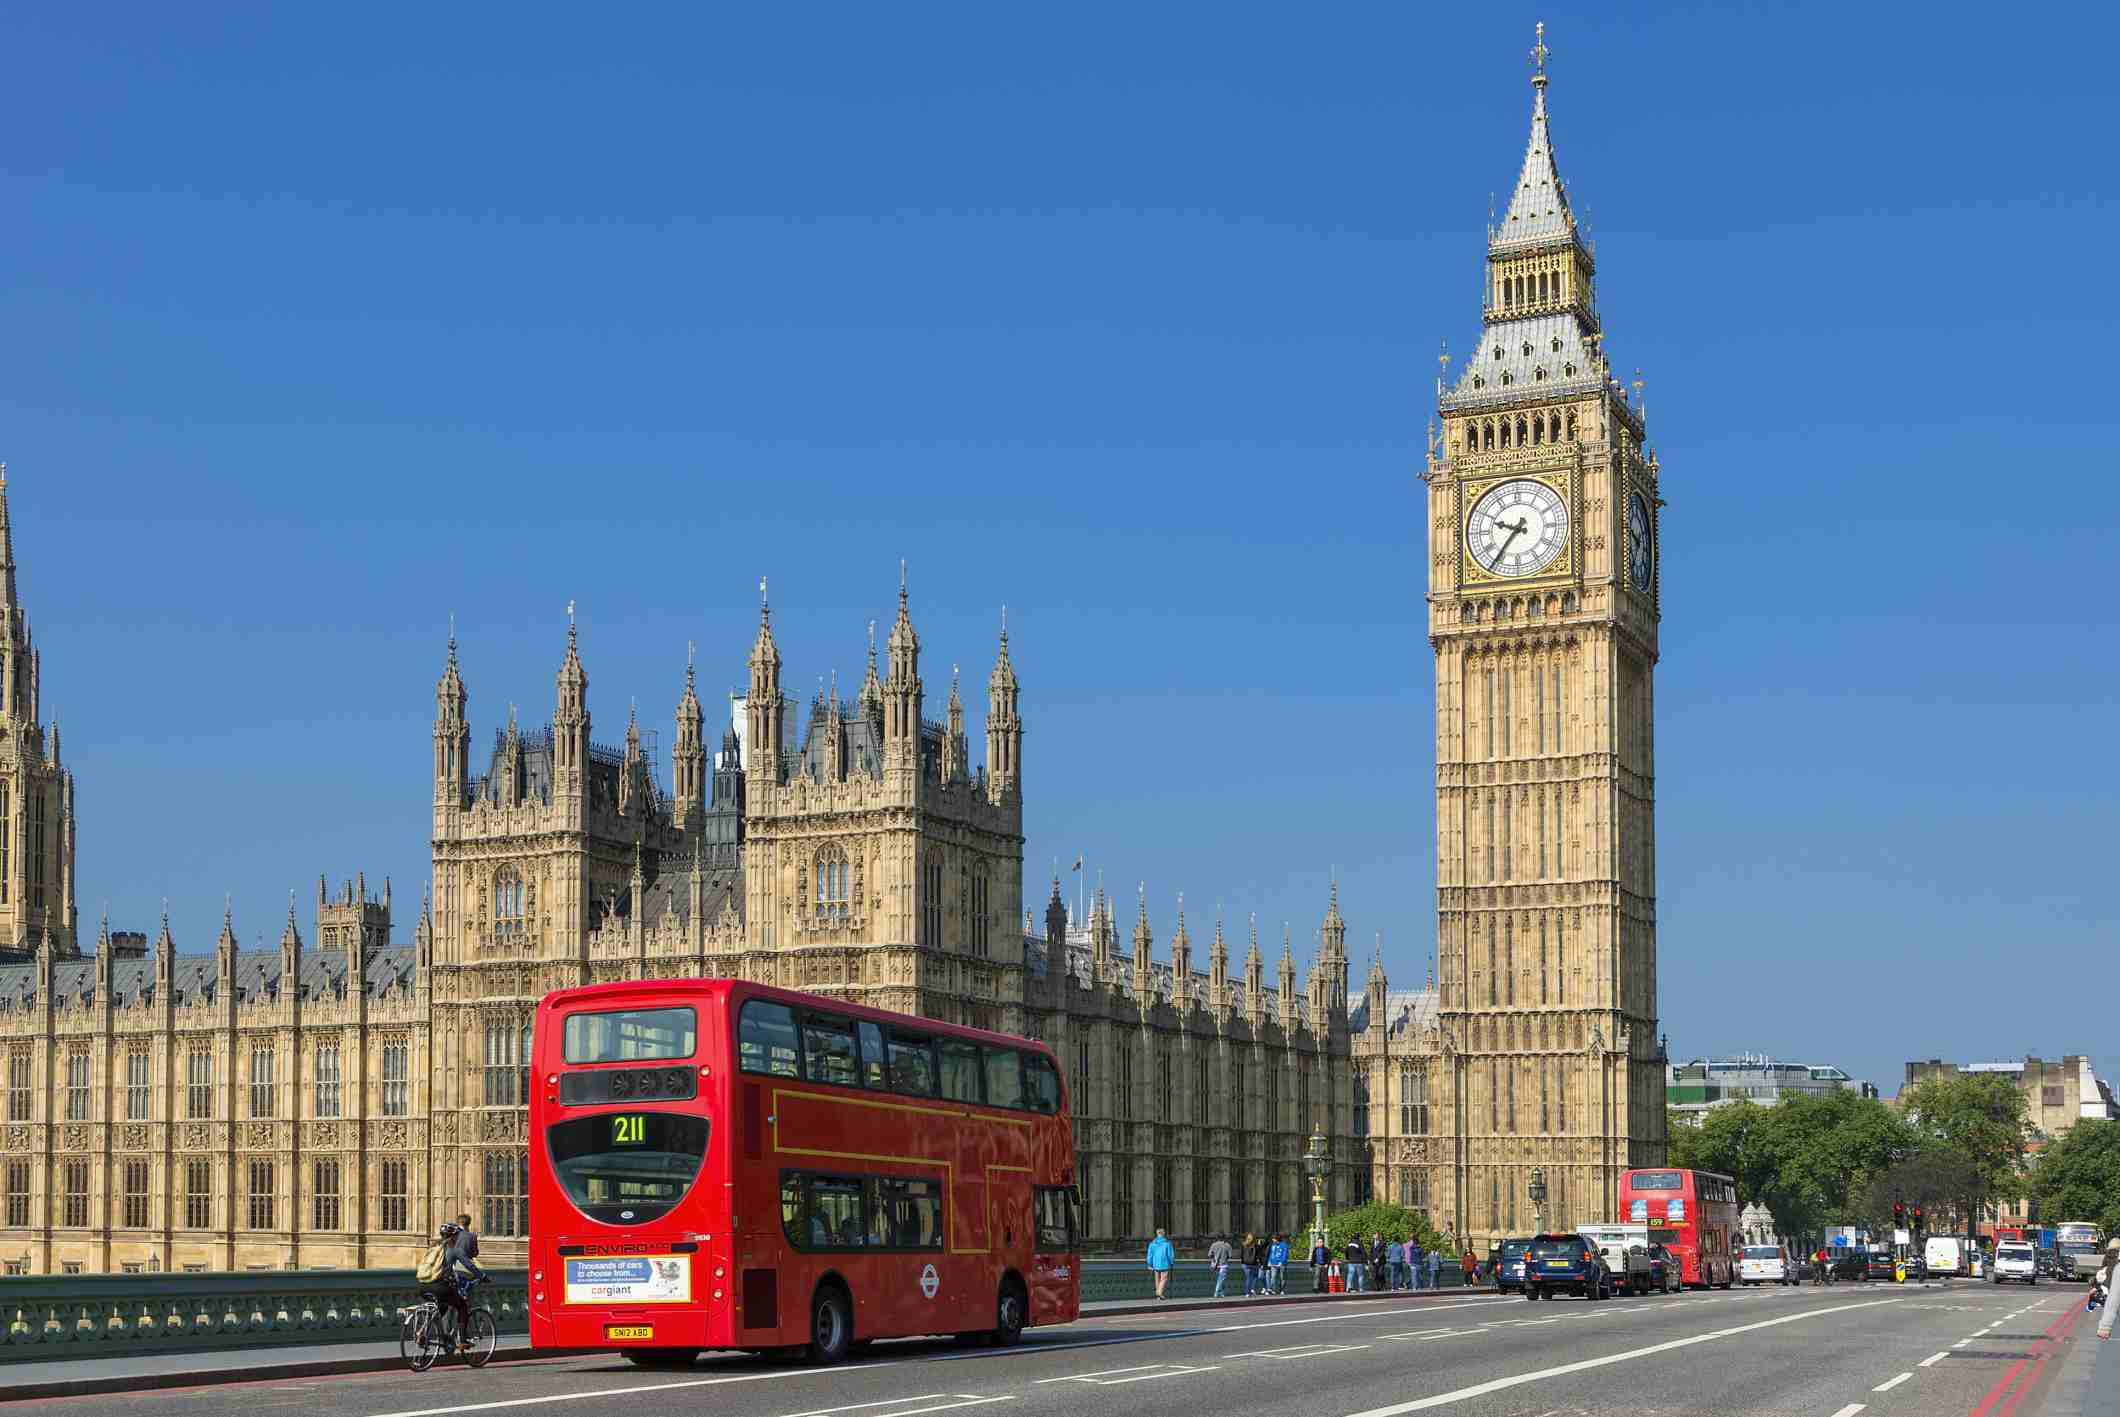 Big Ben Tower in London with double-decker bus traveling in front.